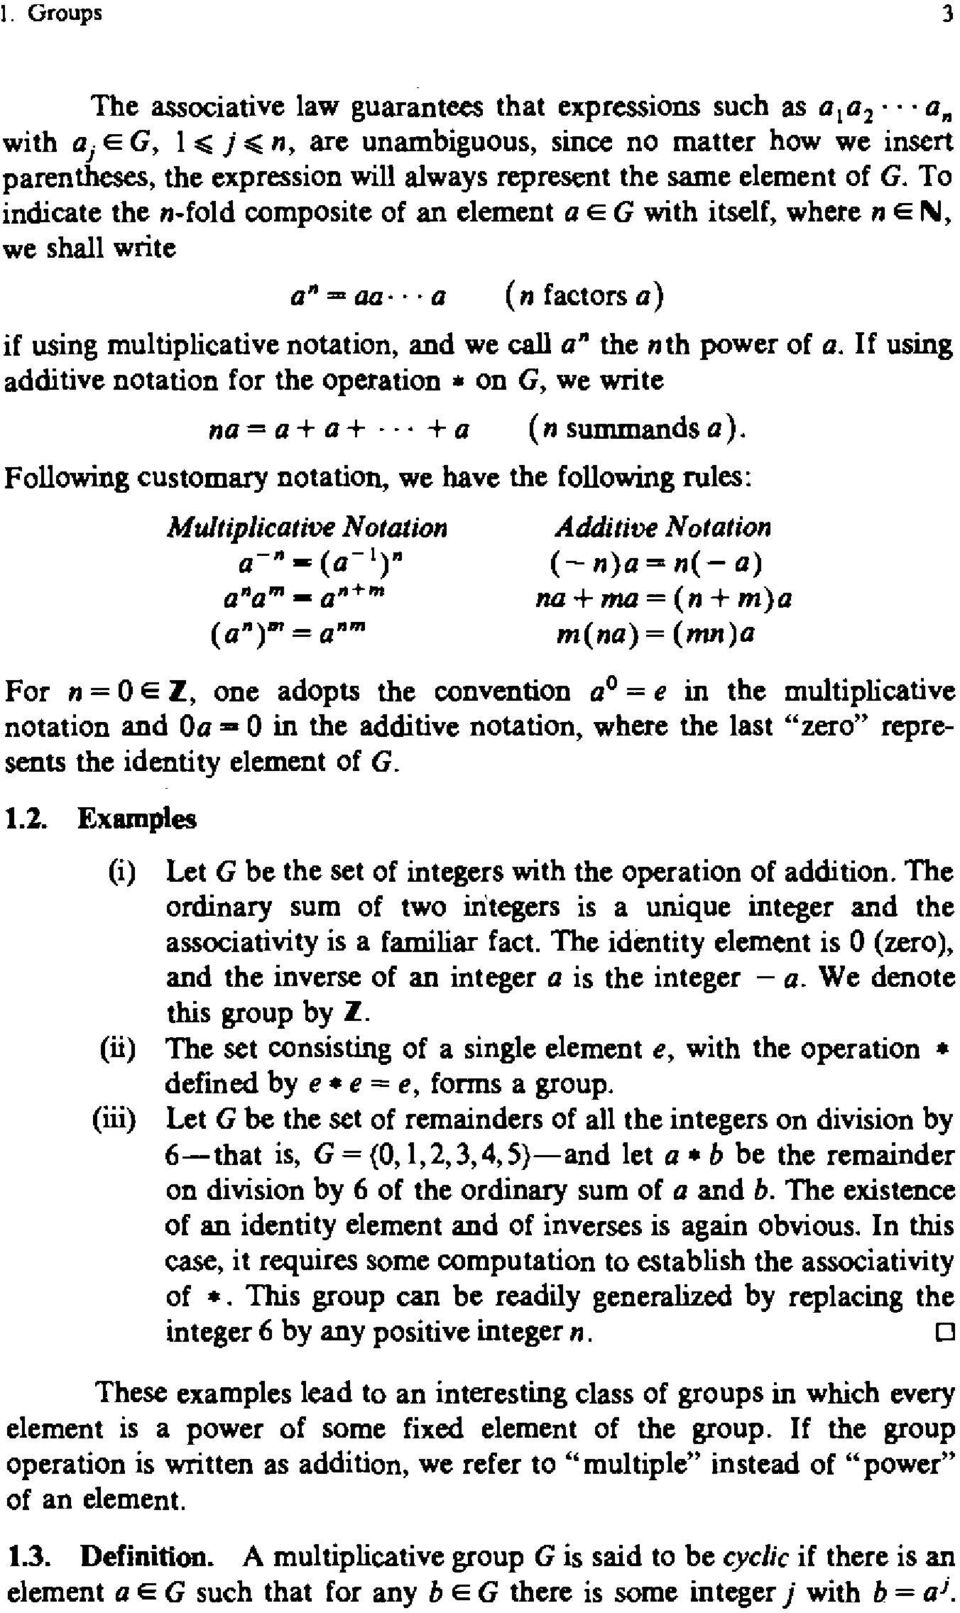 If using additive notation for the operation * on G, we write (nsummandsa).